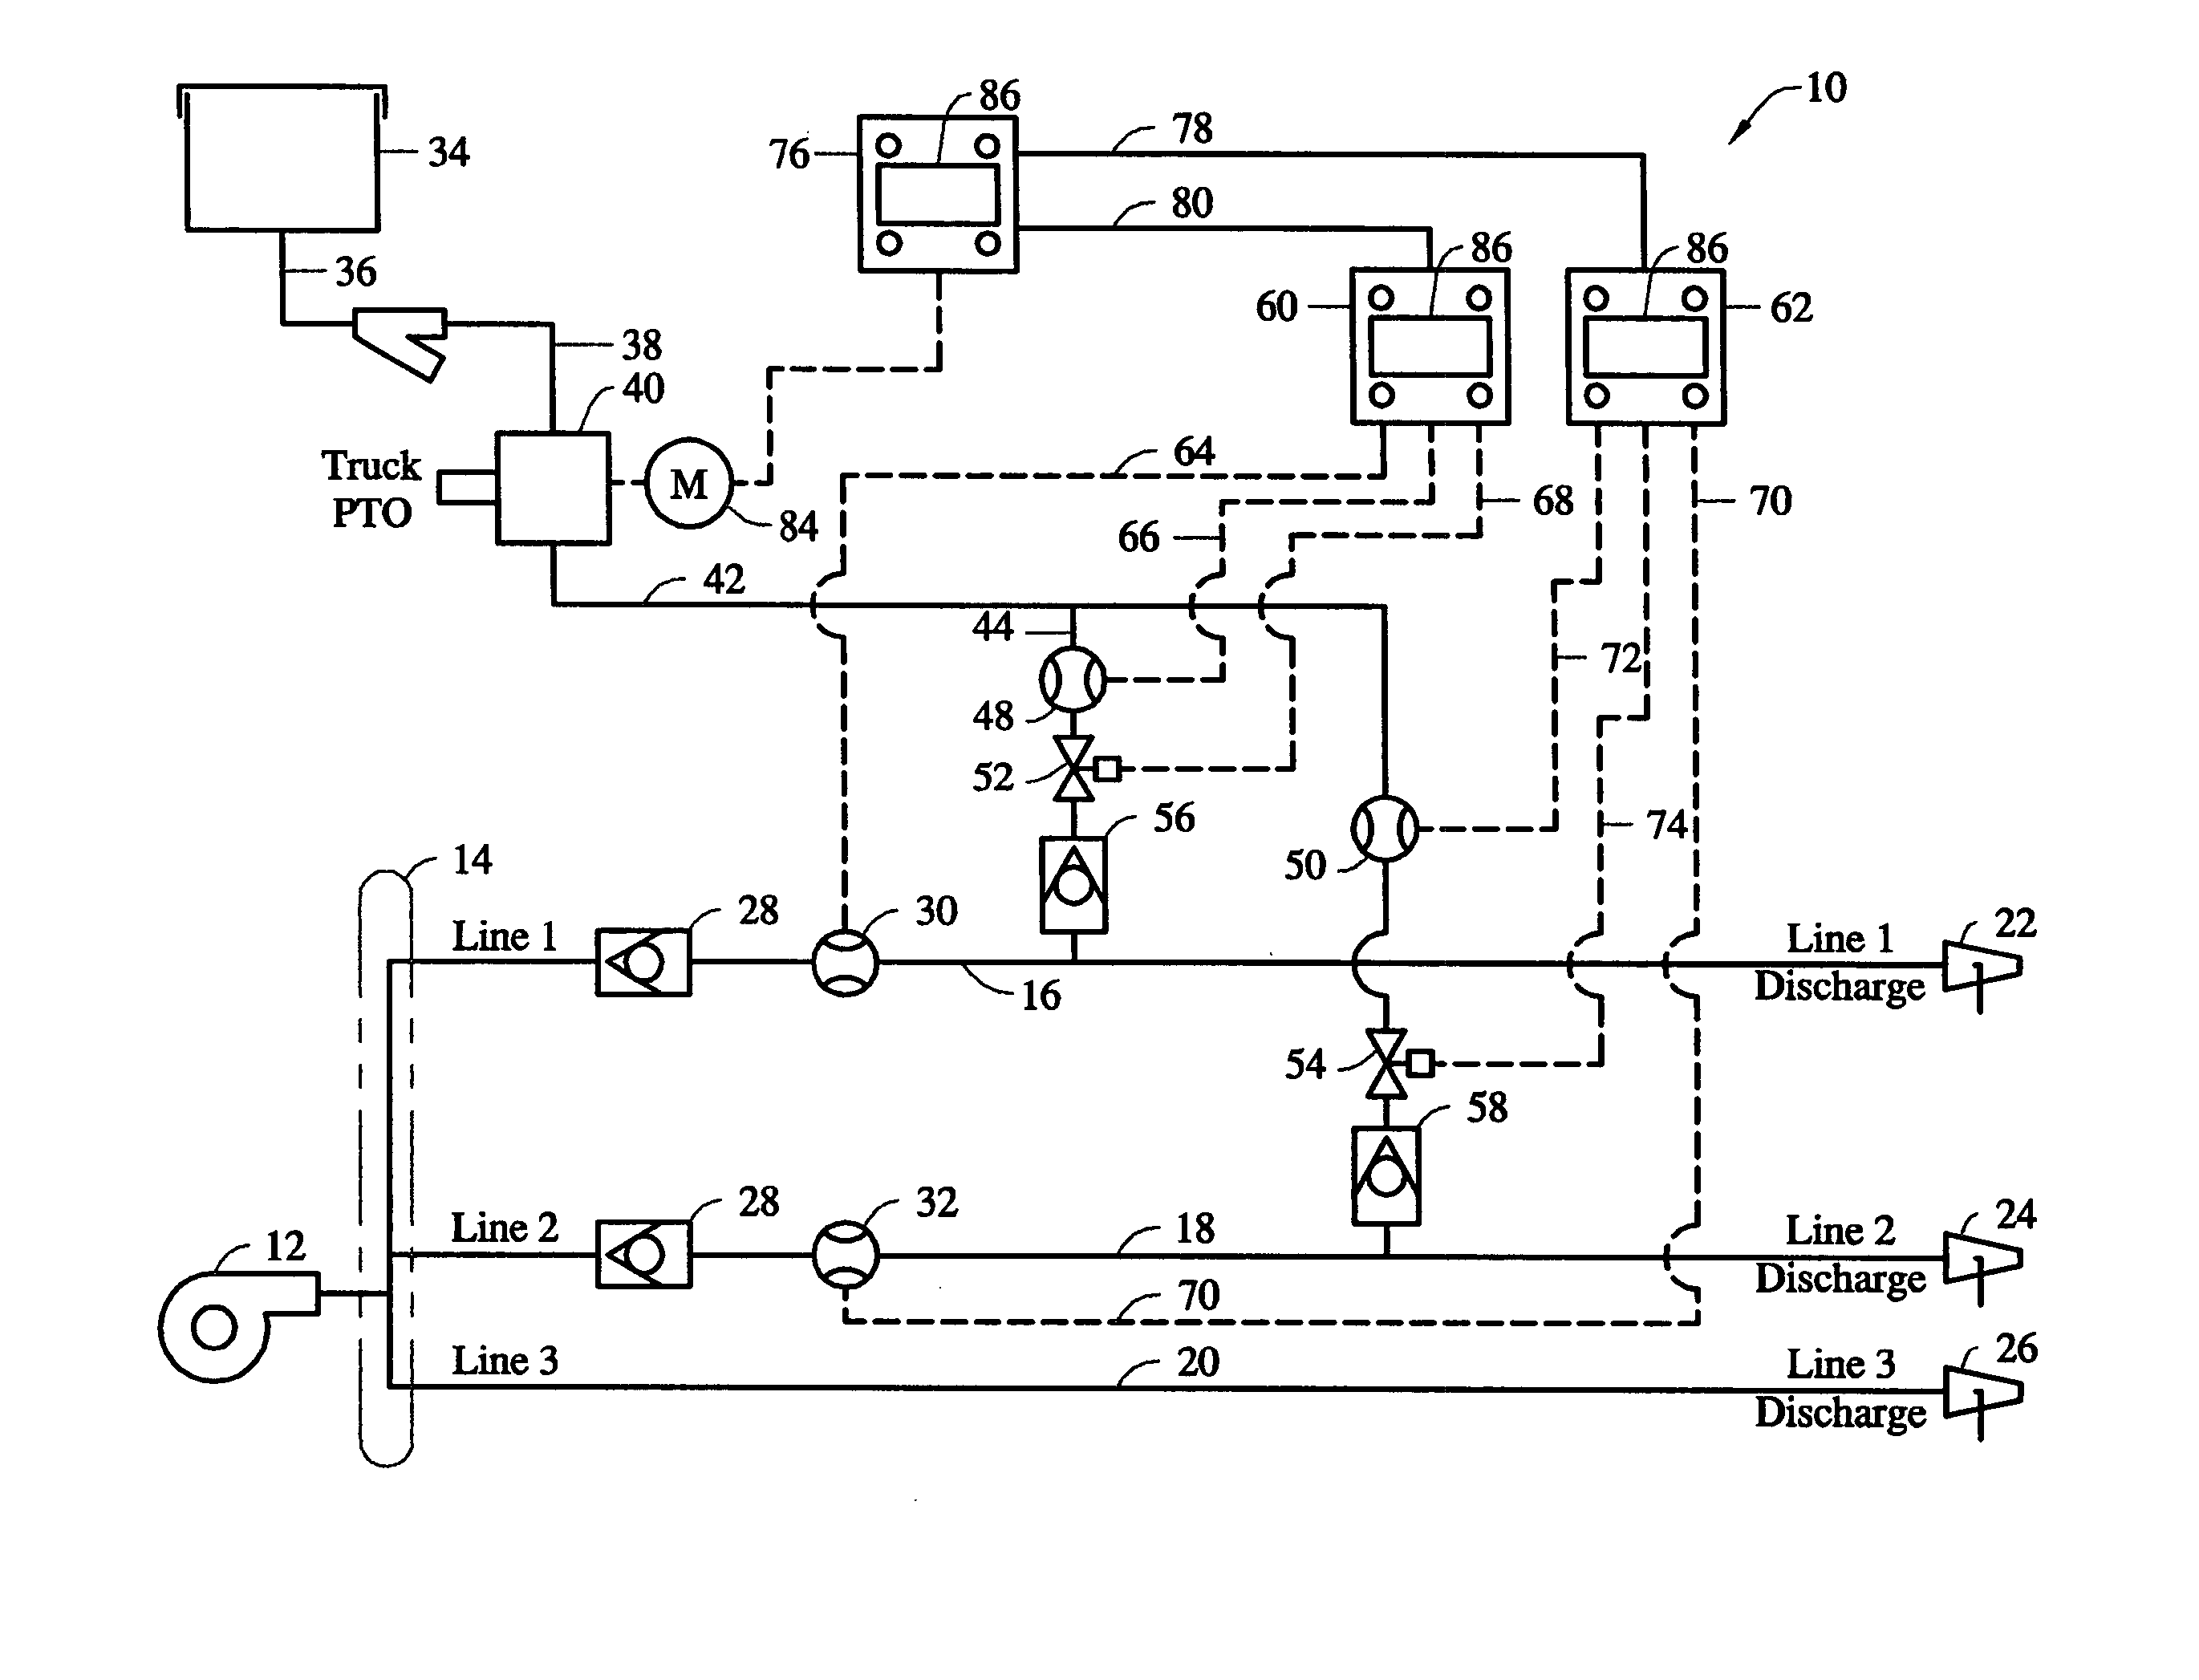 US20050045345A1 20050303 D00000 patent us20050045345 high flow foam system for fire fighting ansul system wiring schematic at crackthecode.co